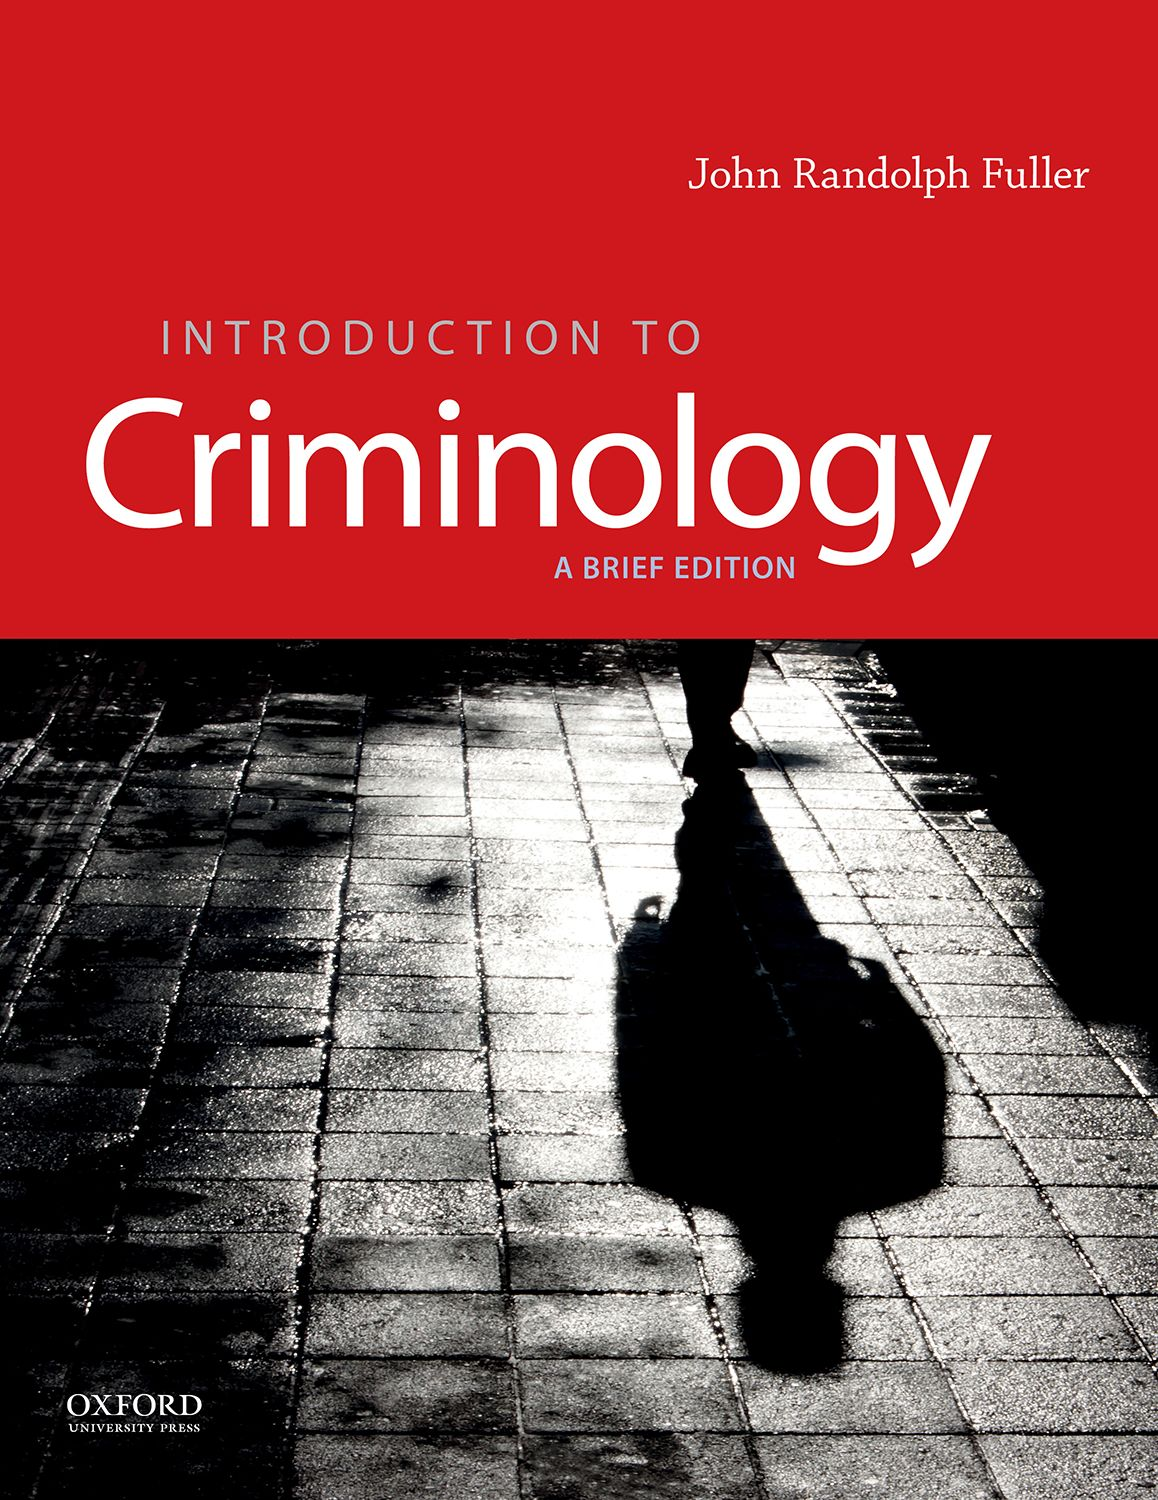 Introduction to Criminology: A Brief Edition Student Resources